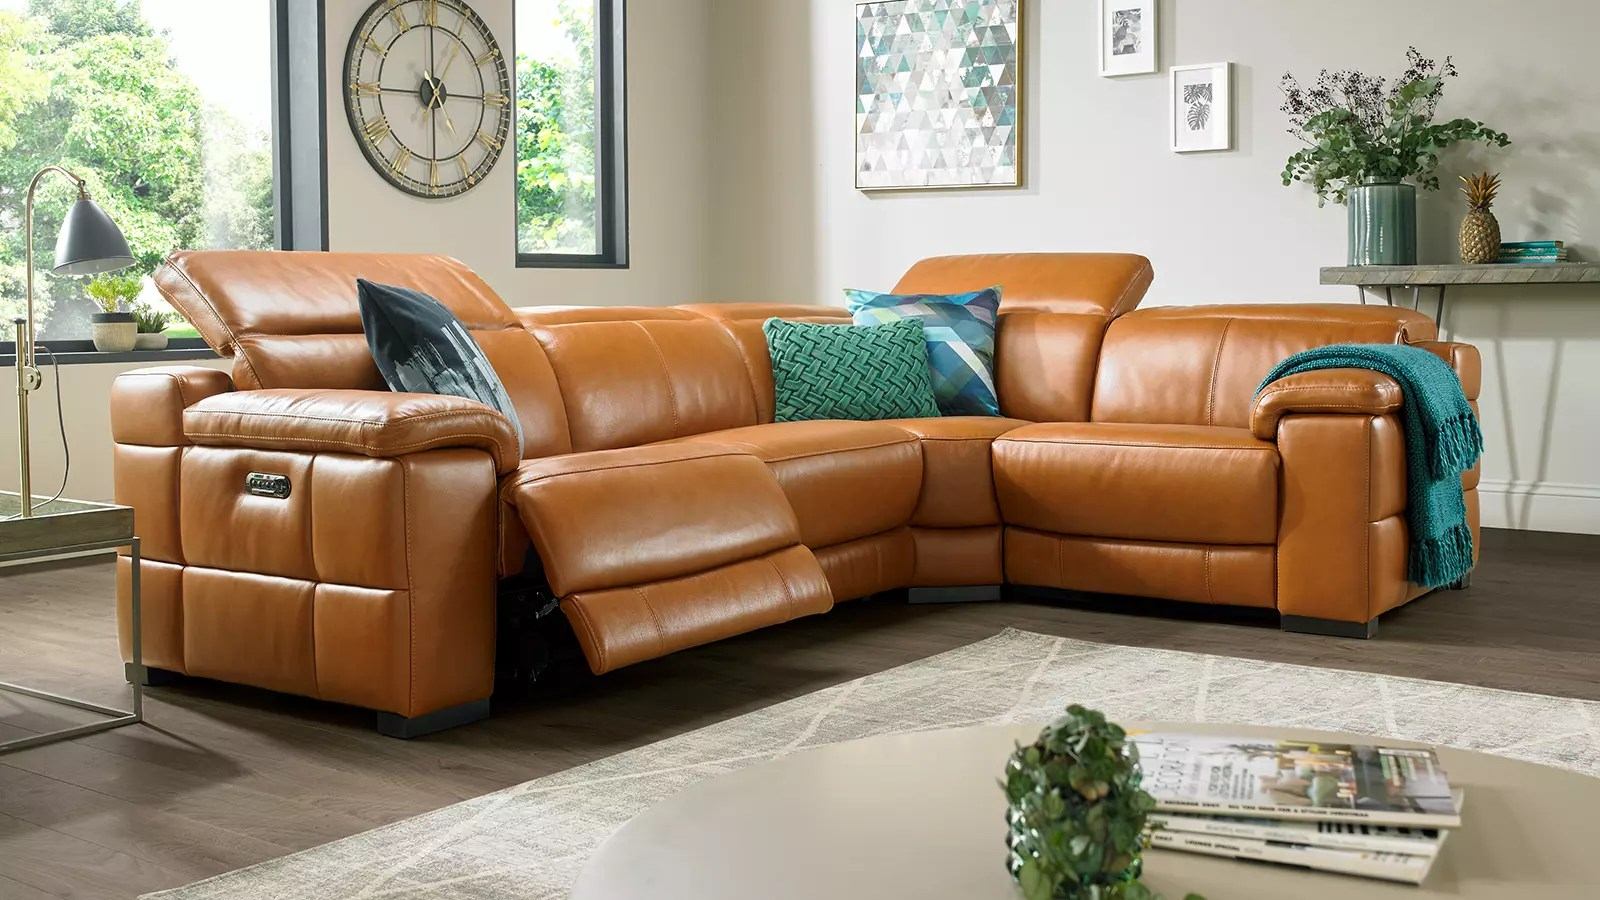 Sofology Yellow Sofa Recliner Sofas Leather Fabric And Corner Sofology